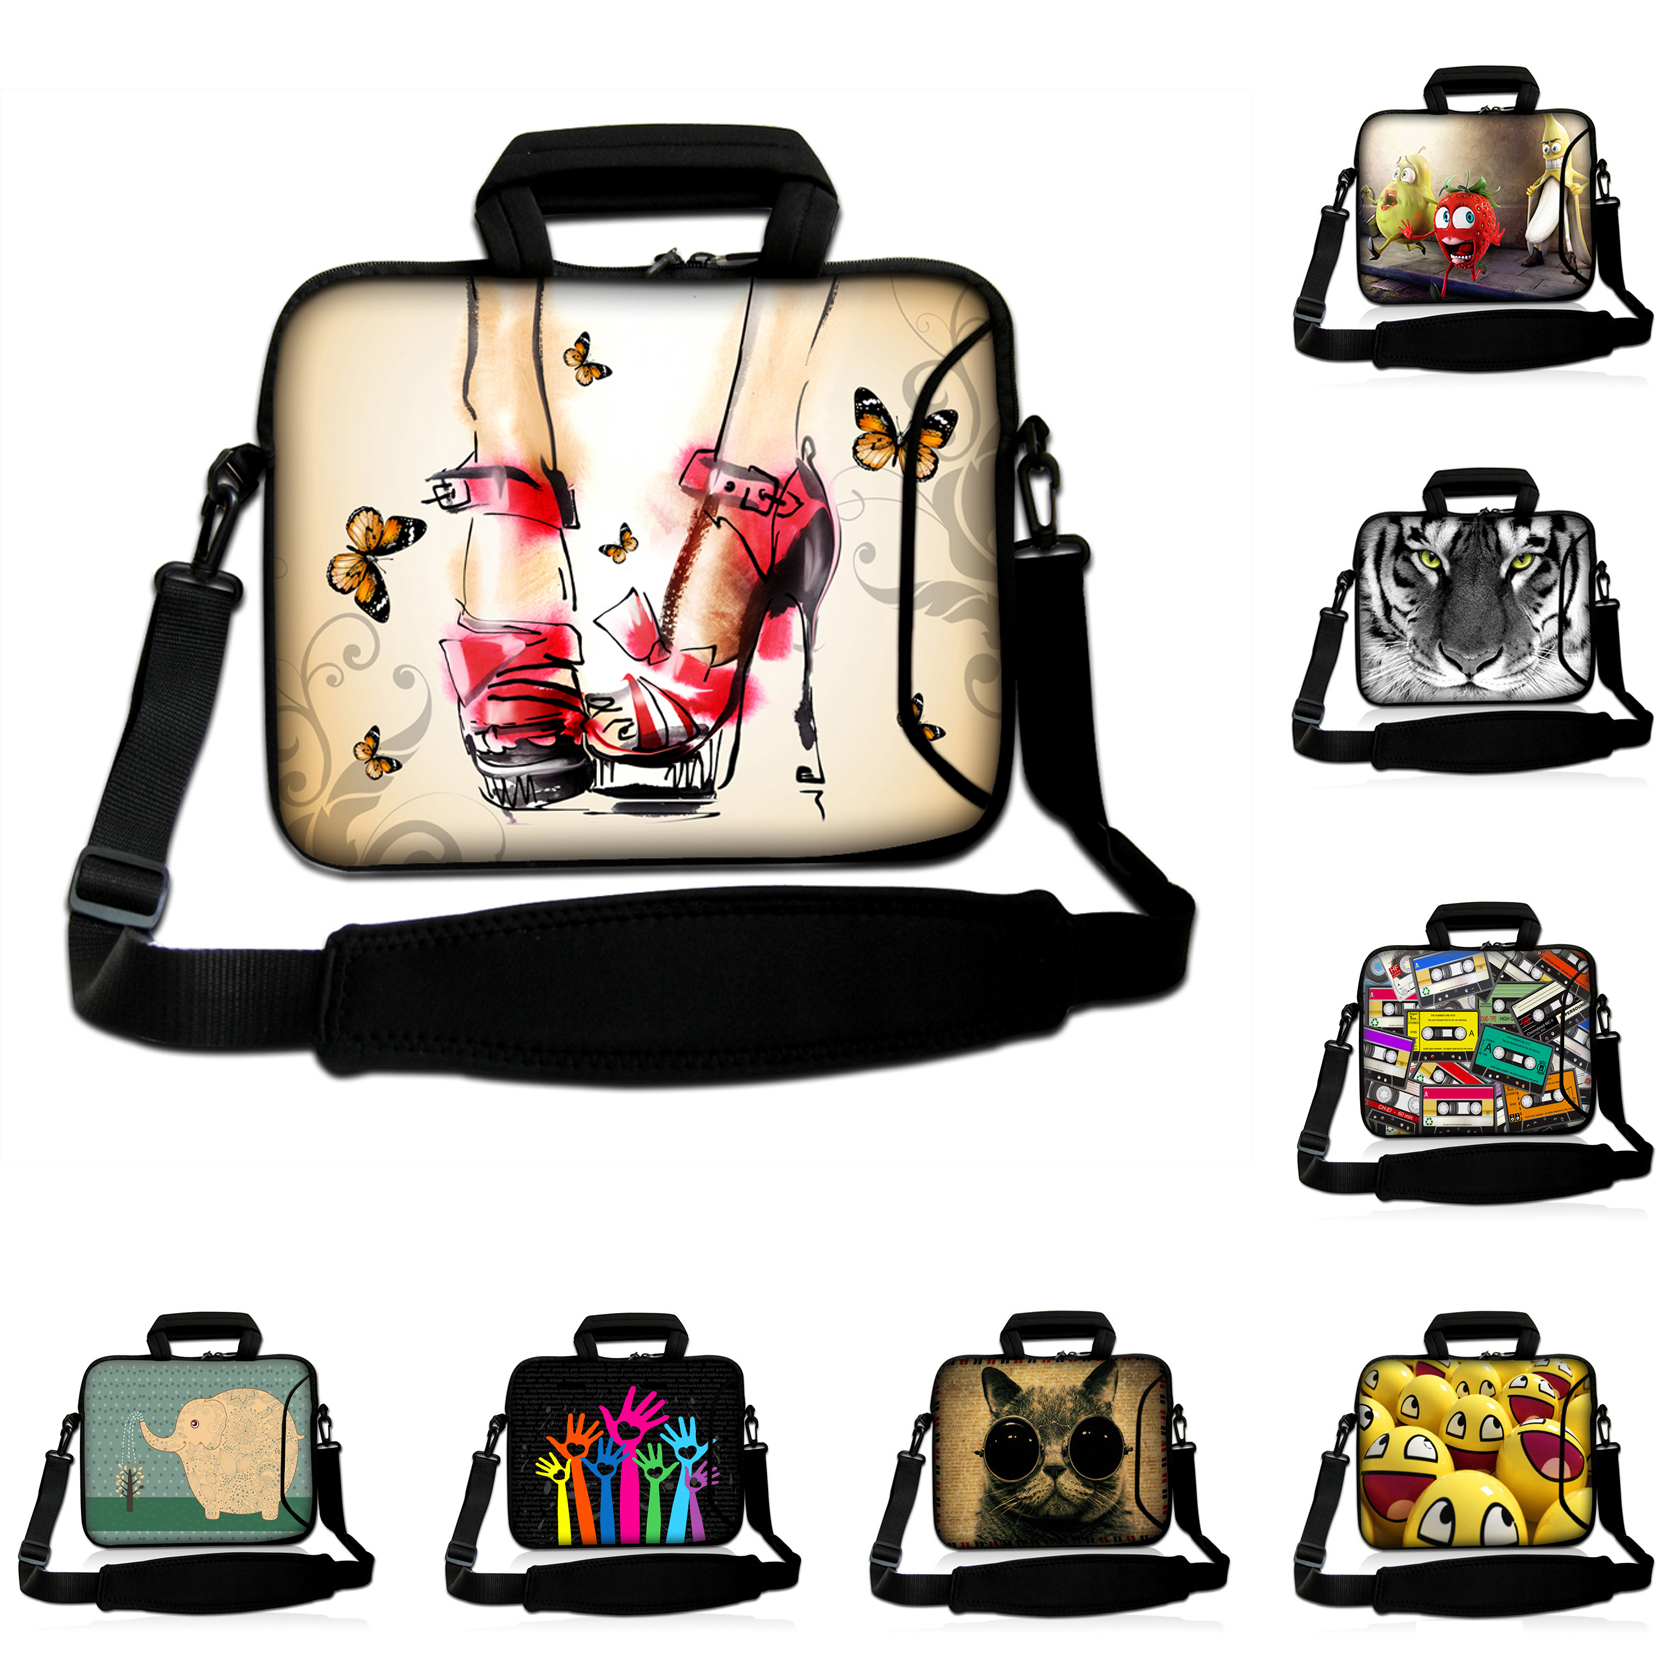 14.1 14 inch Sleeve Notebook Bags 14.4 14.2 inch Shoulder Strap Messenger Laptop Pouch Cover Cases For HP Asus Lenovo Tablet PC<br><br>Aliexpress